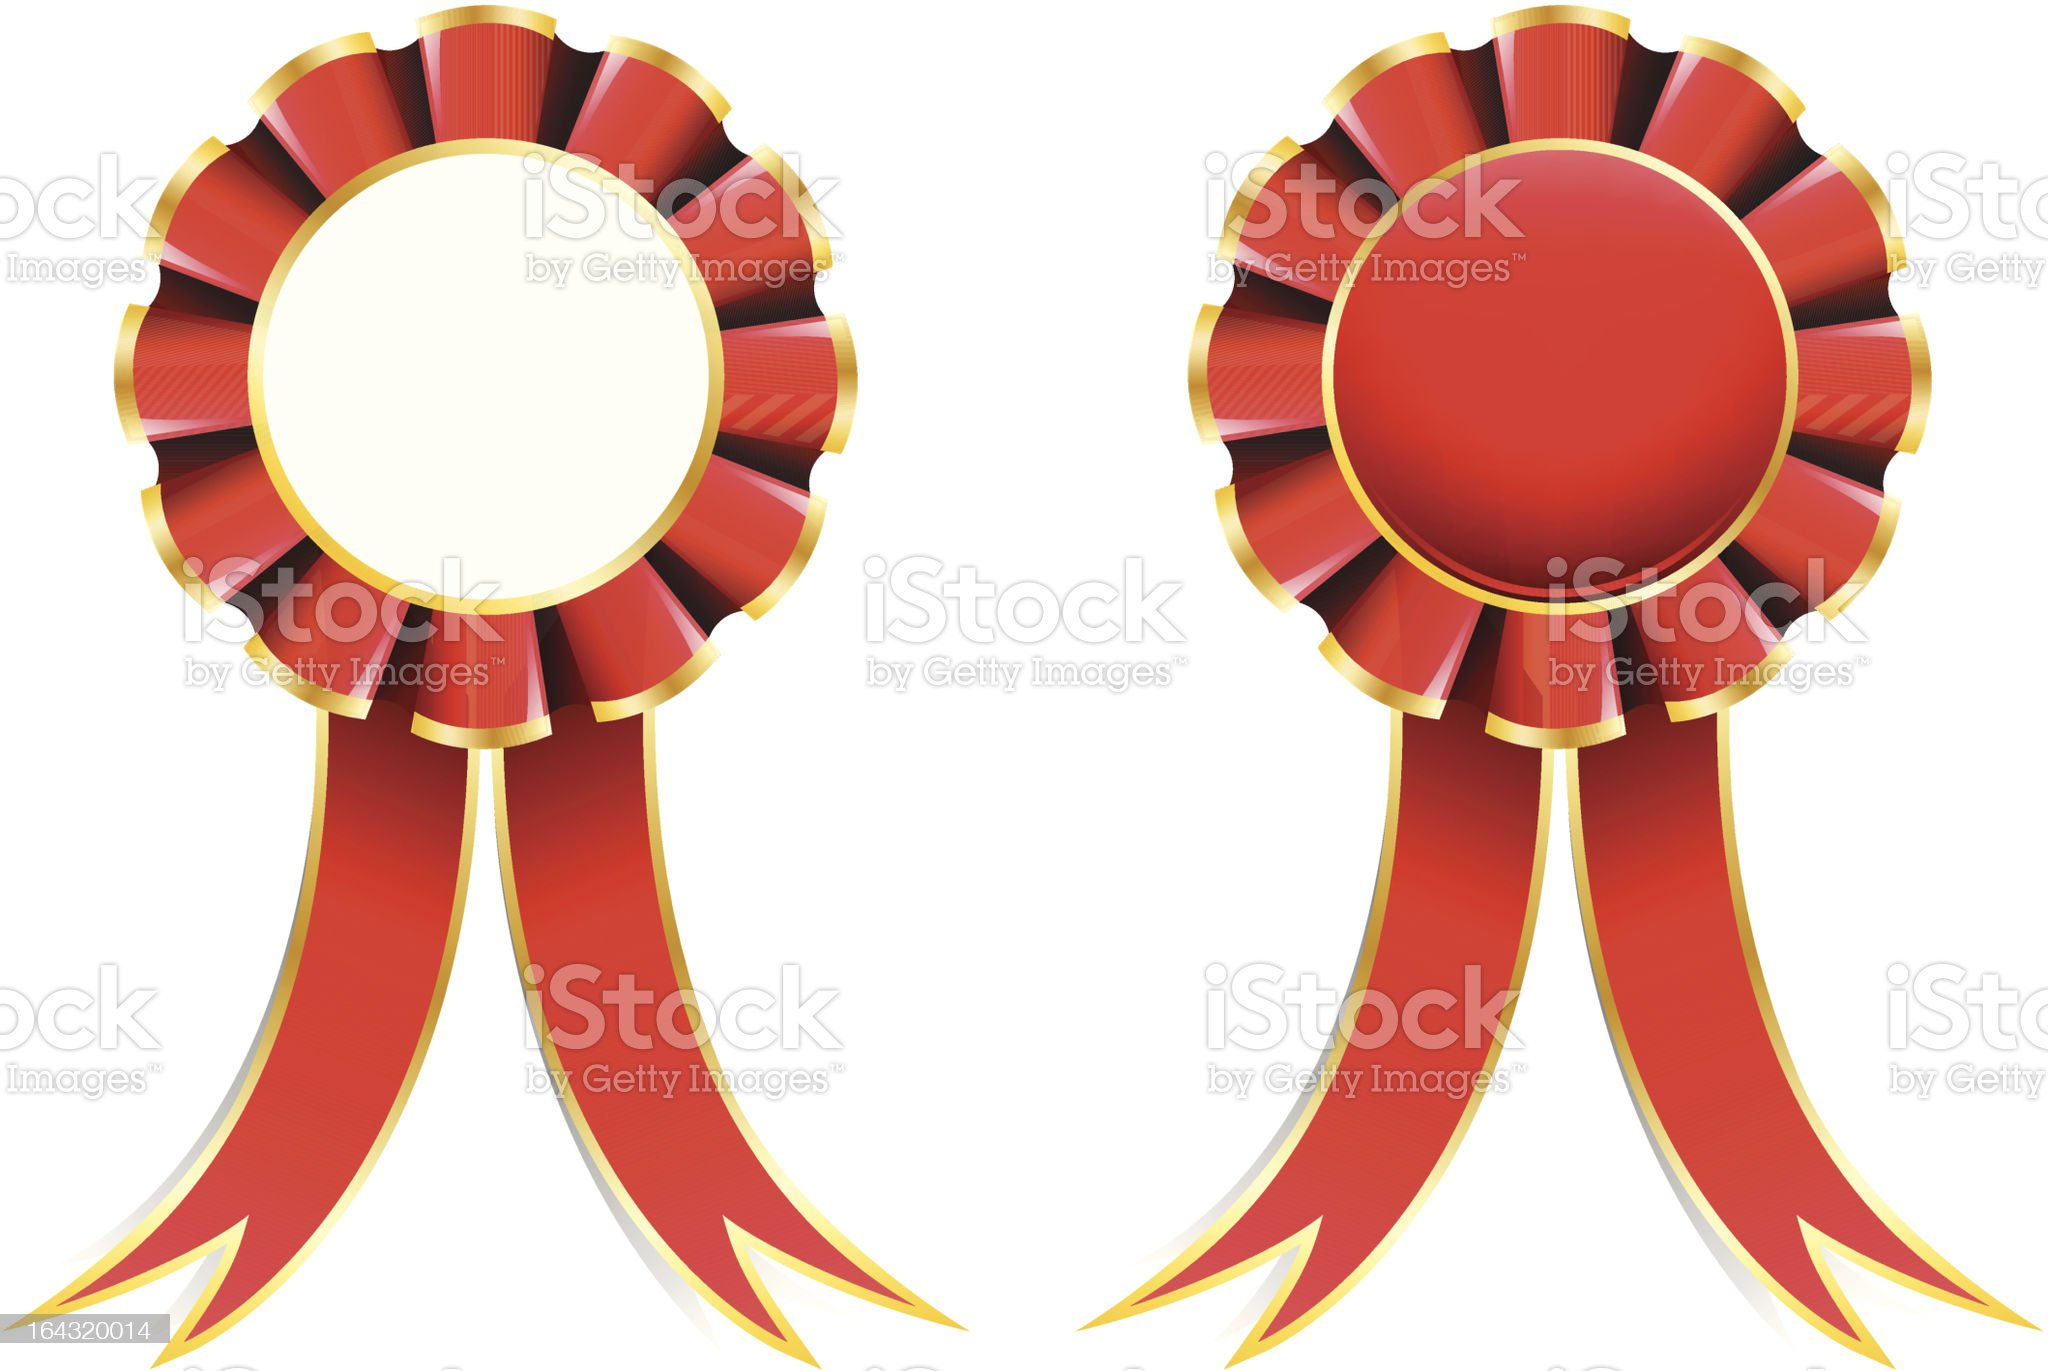 Red Ribbon royalty-free stock vector art